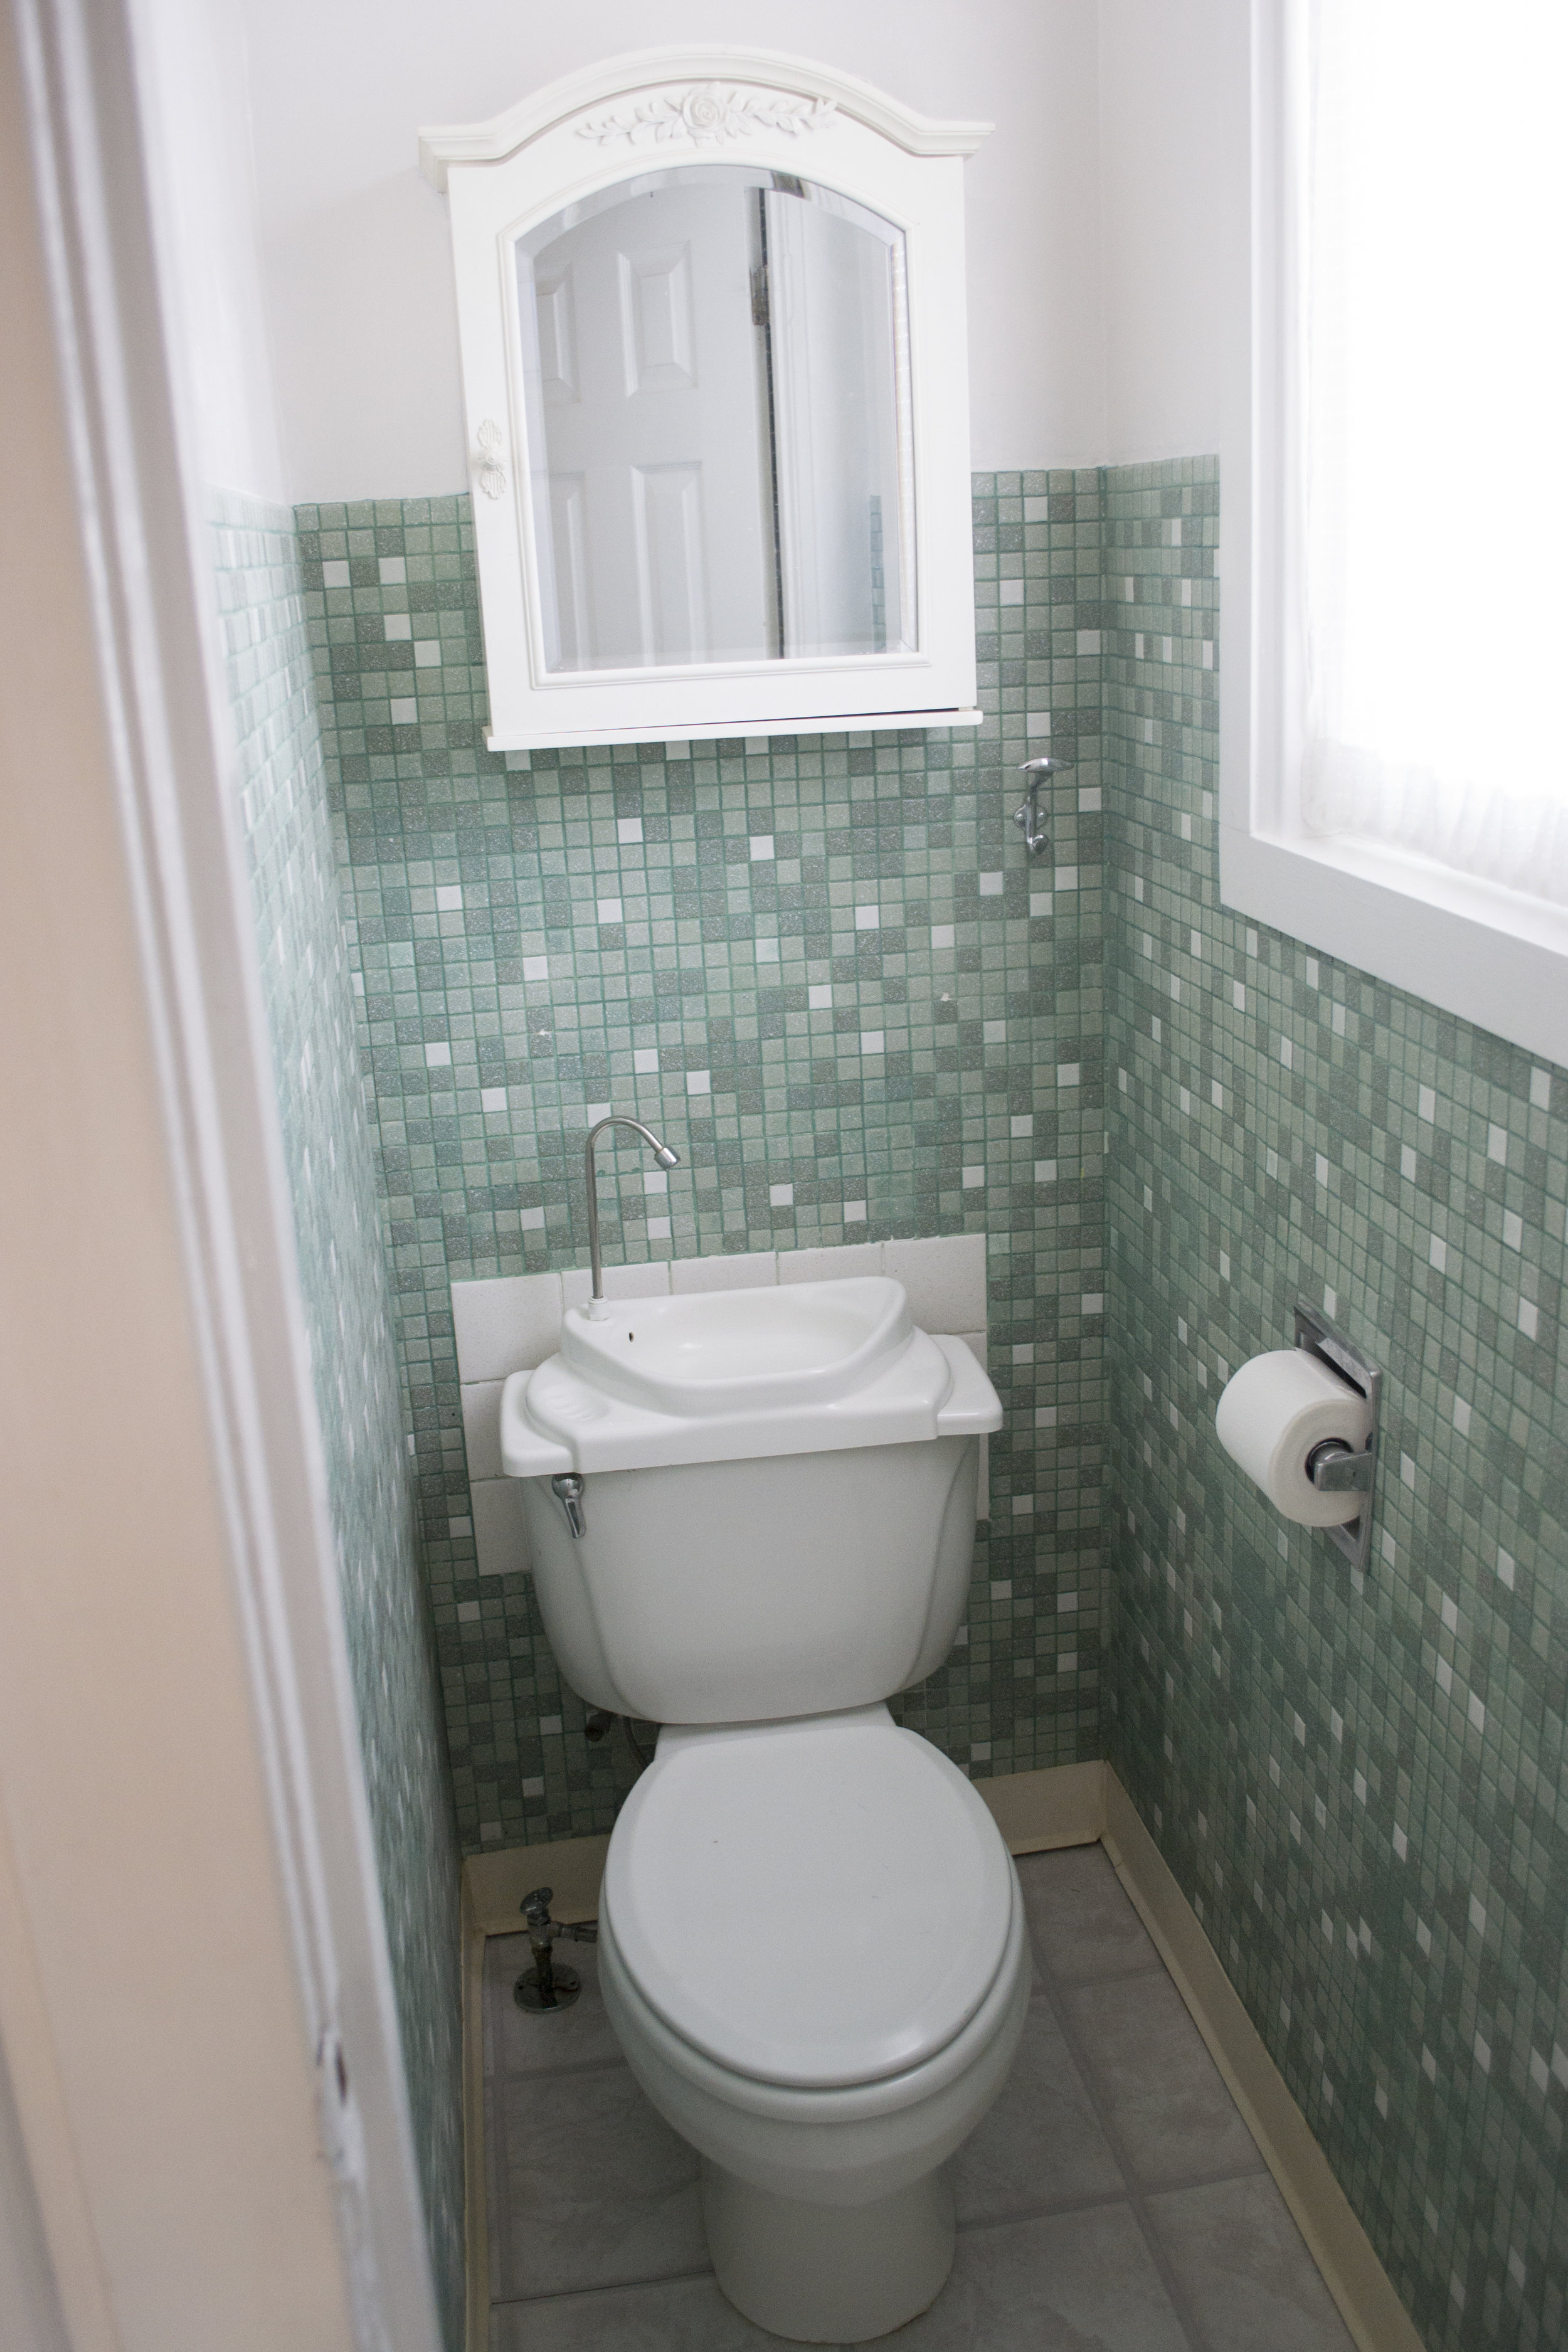 The bathroom when we first moved in. Literally the size of a restroom stall.